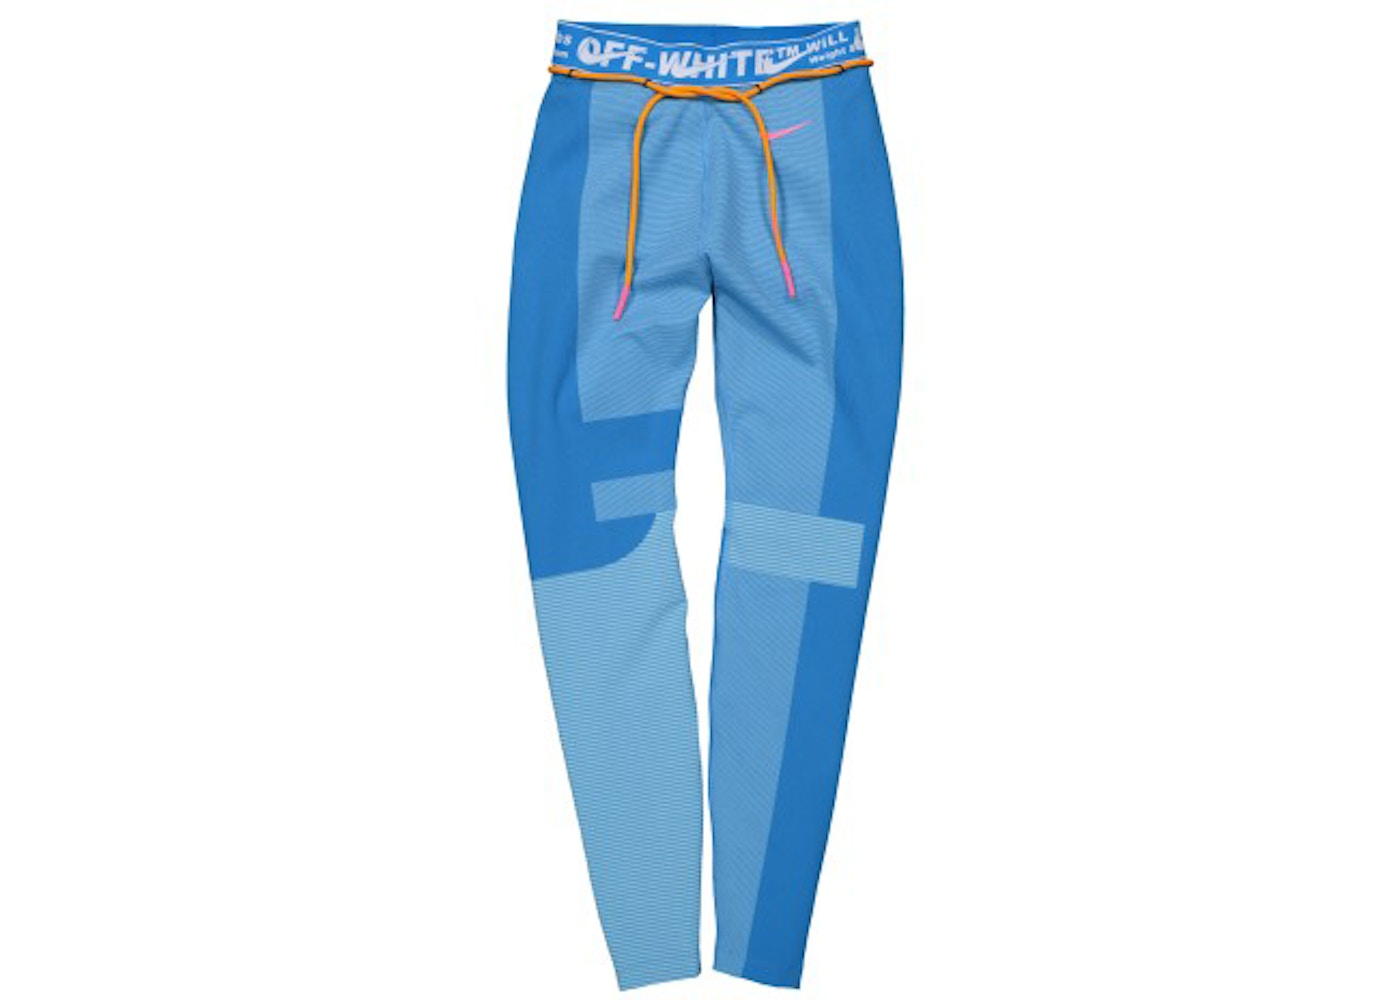 OFF WHITE x Nike Women's Easy Run Tight Photo Blue